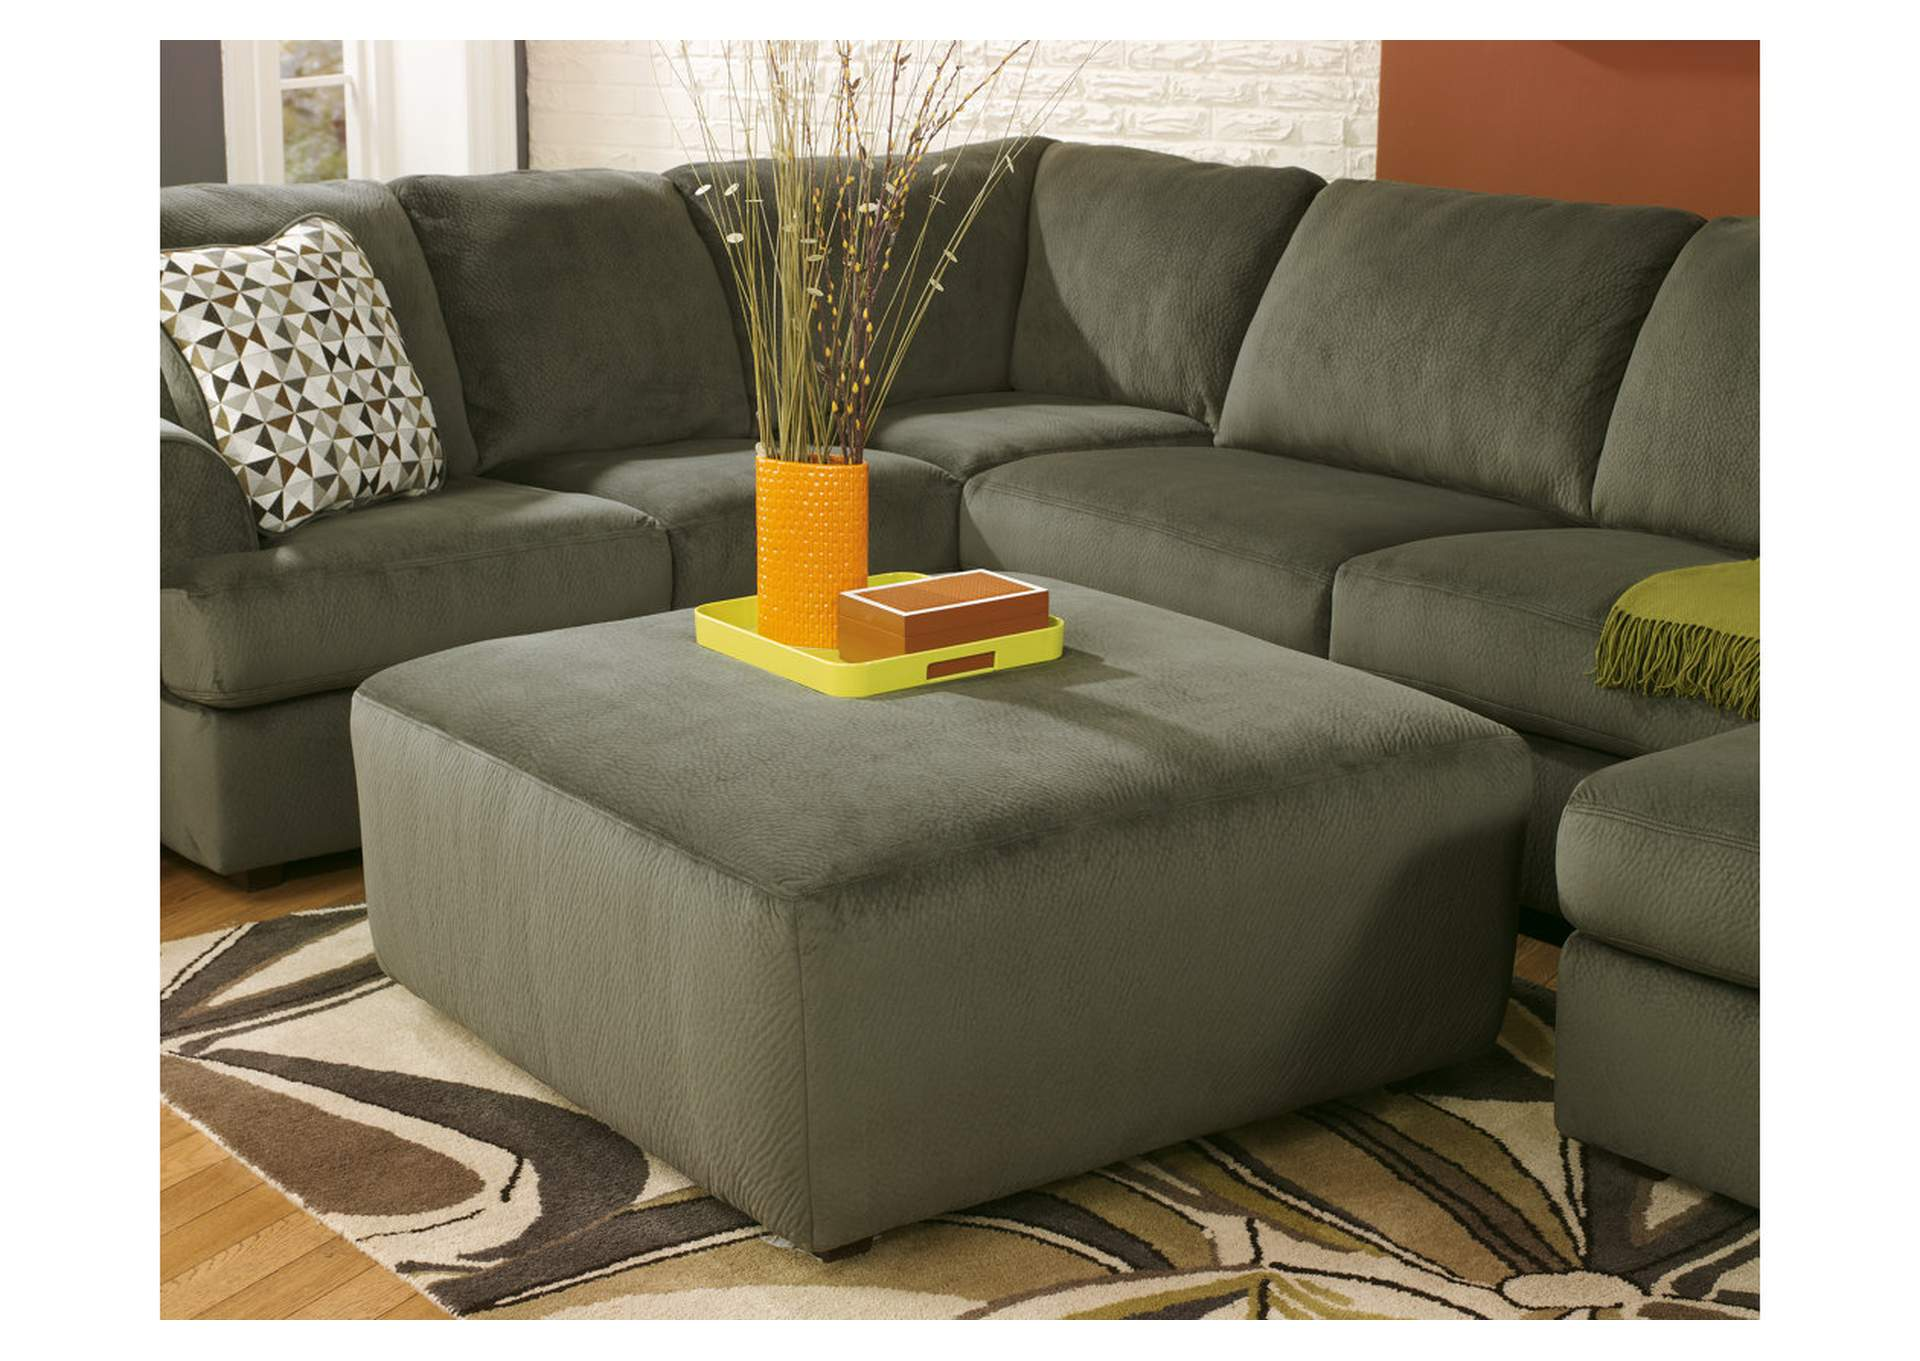 Jessa Place Pewter Oversized Accent Ottoman,Signature Design By Ashley